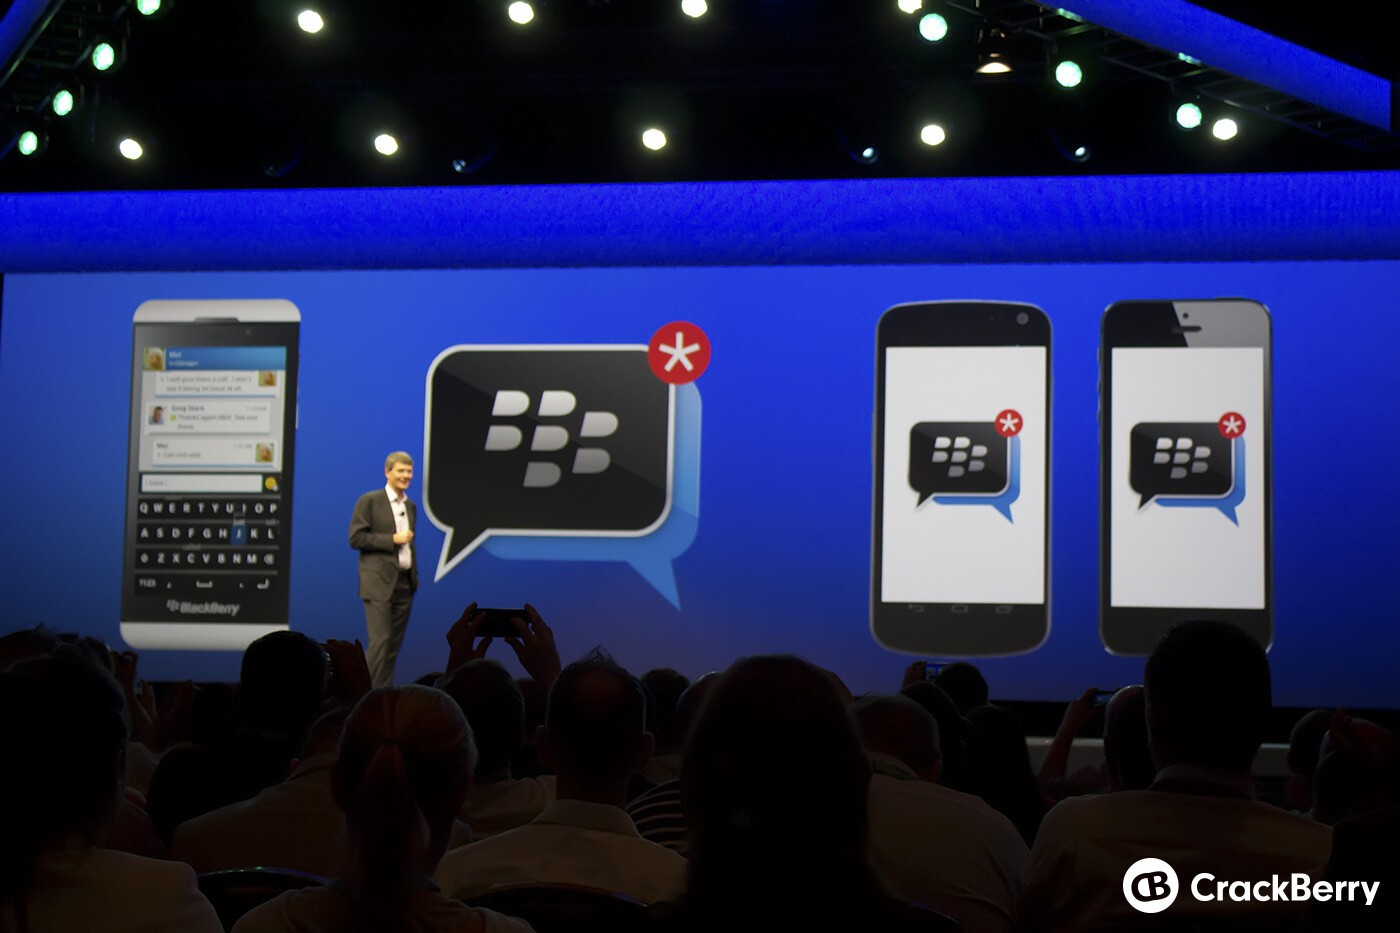 Samsung Begins Advertising Bbm Coming Soon To Galaxy Series Devices